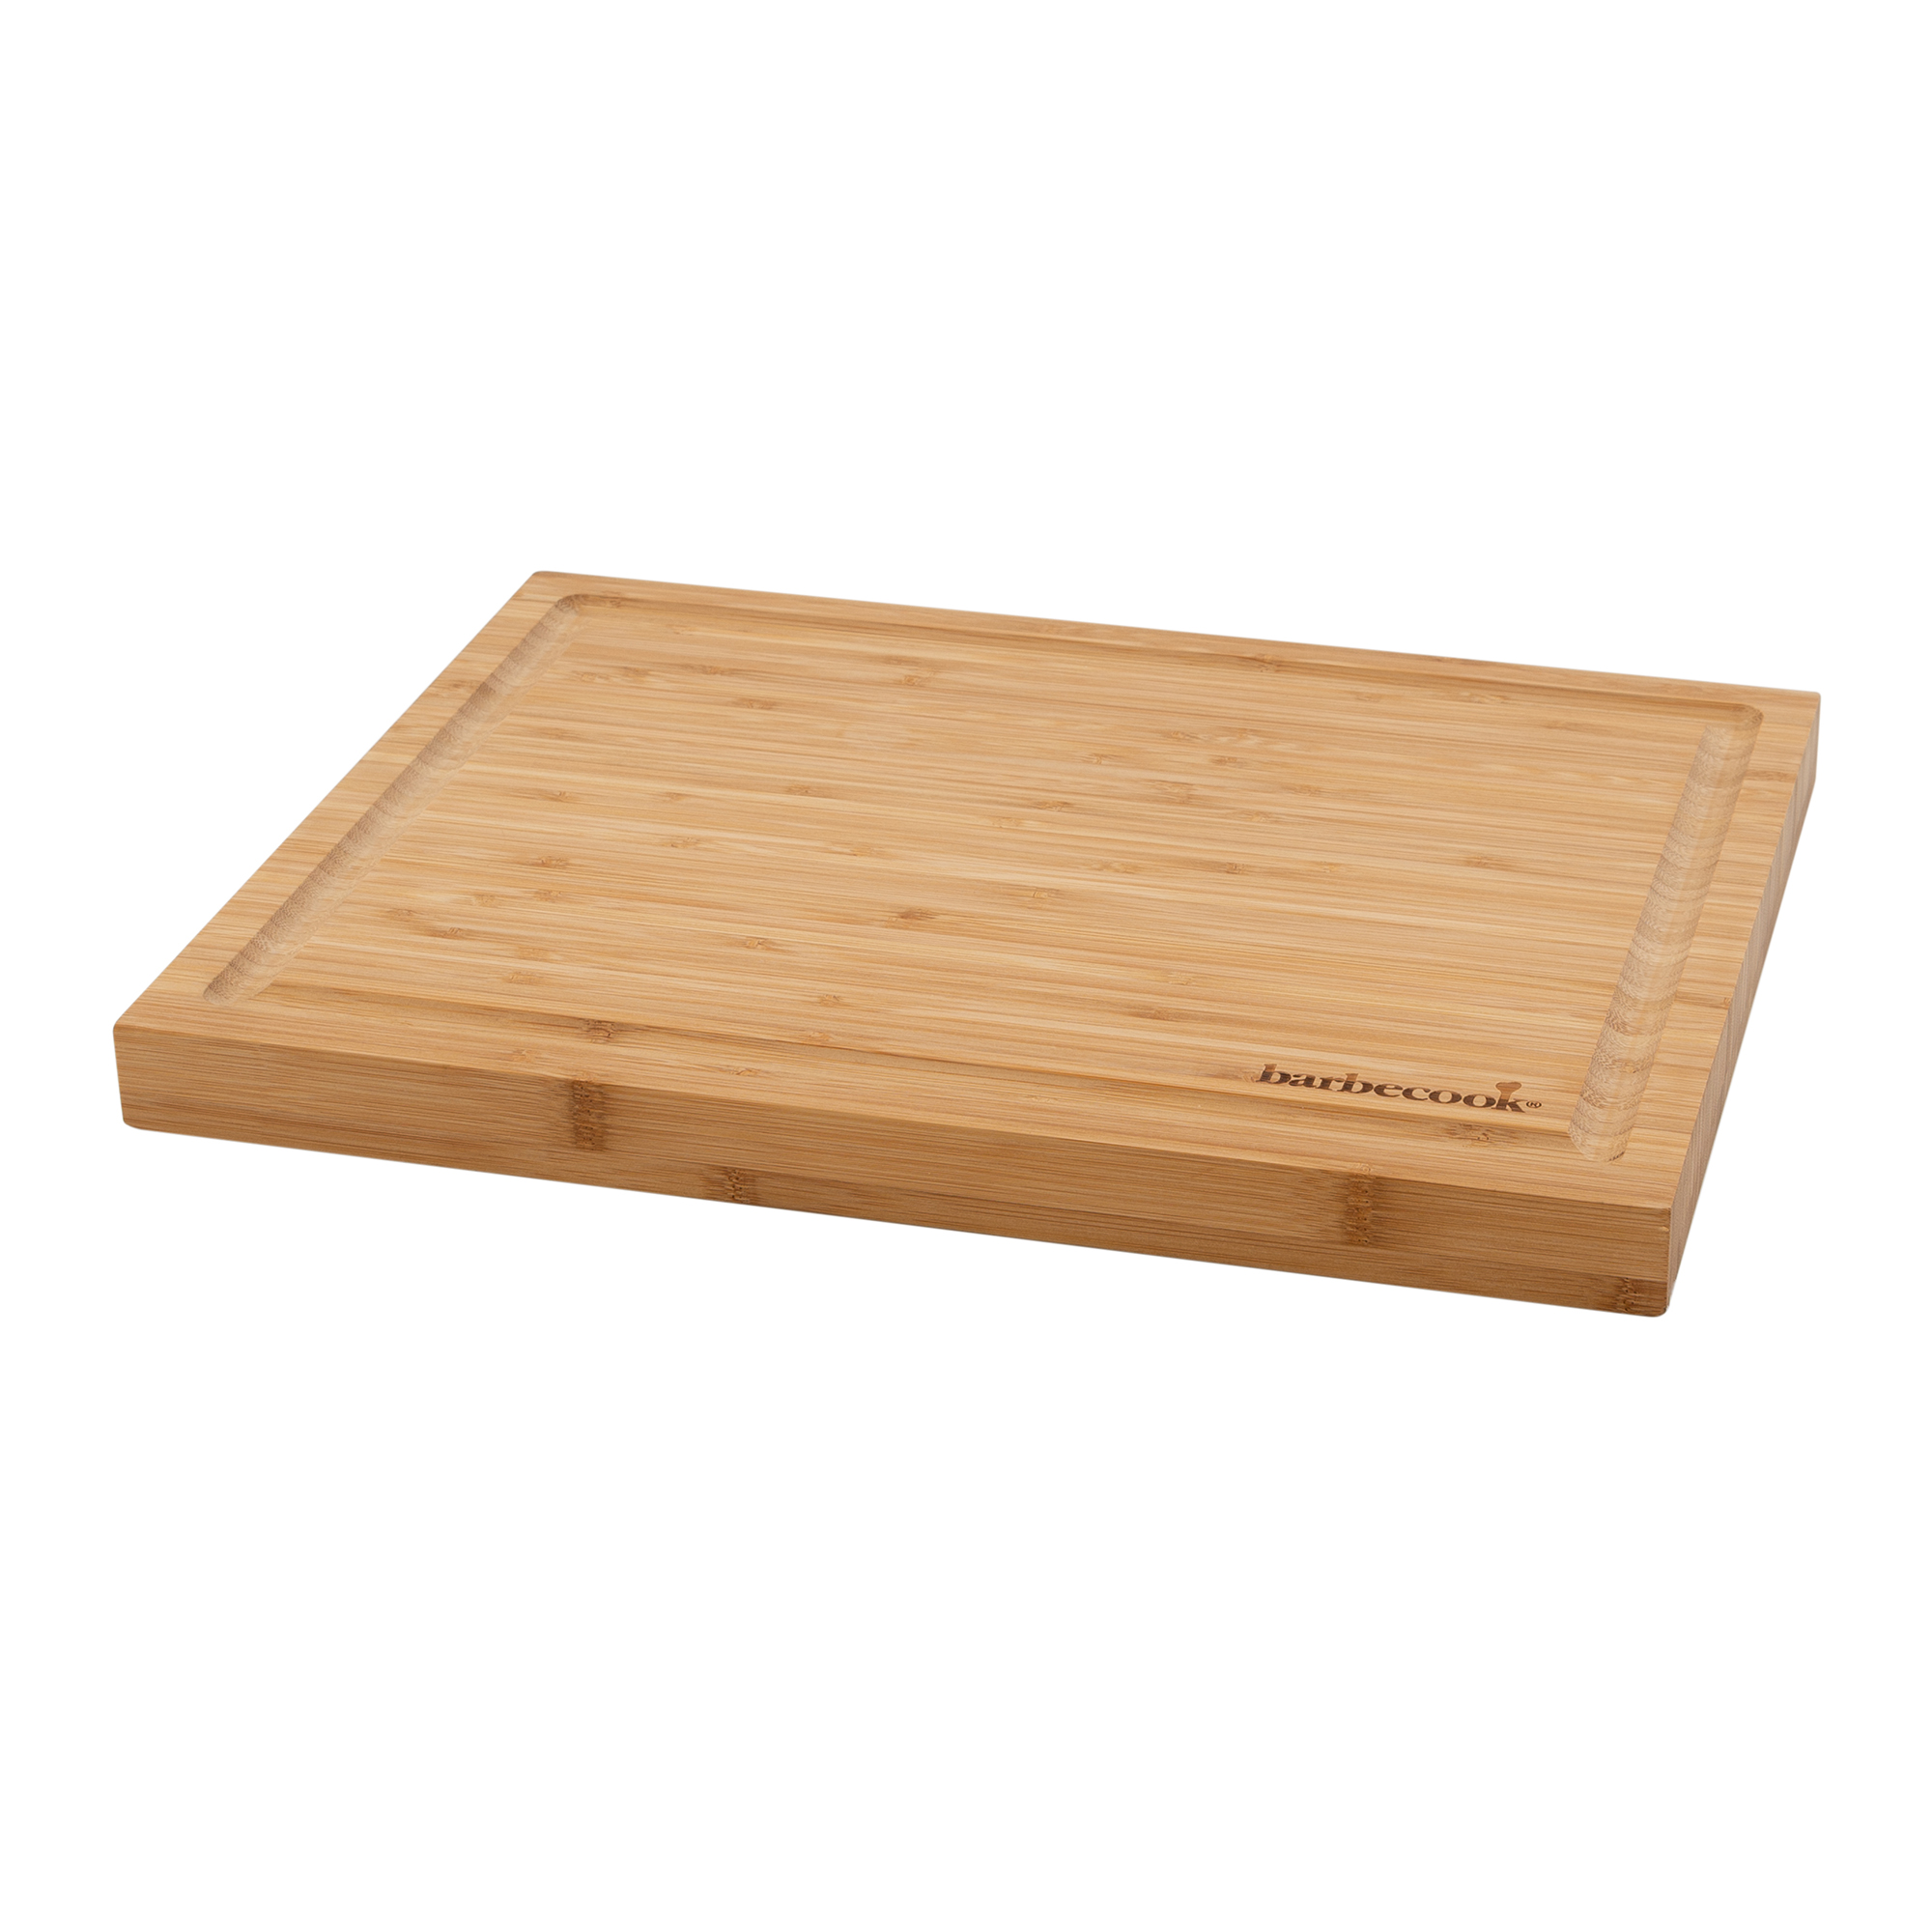 Barbecook bamboo cutting board with groove 40x30x3